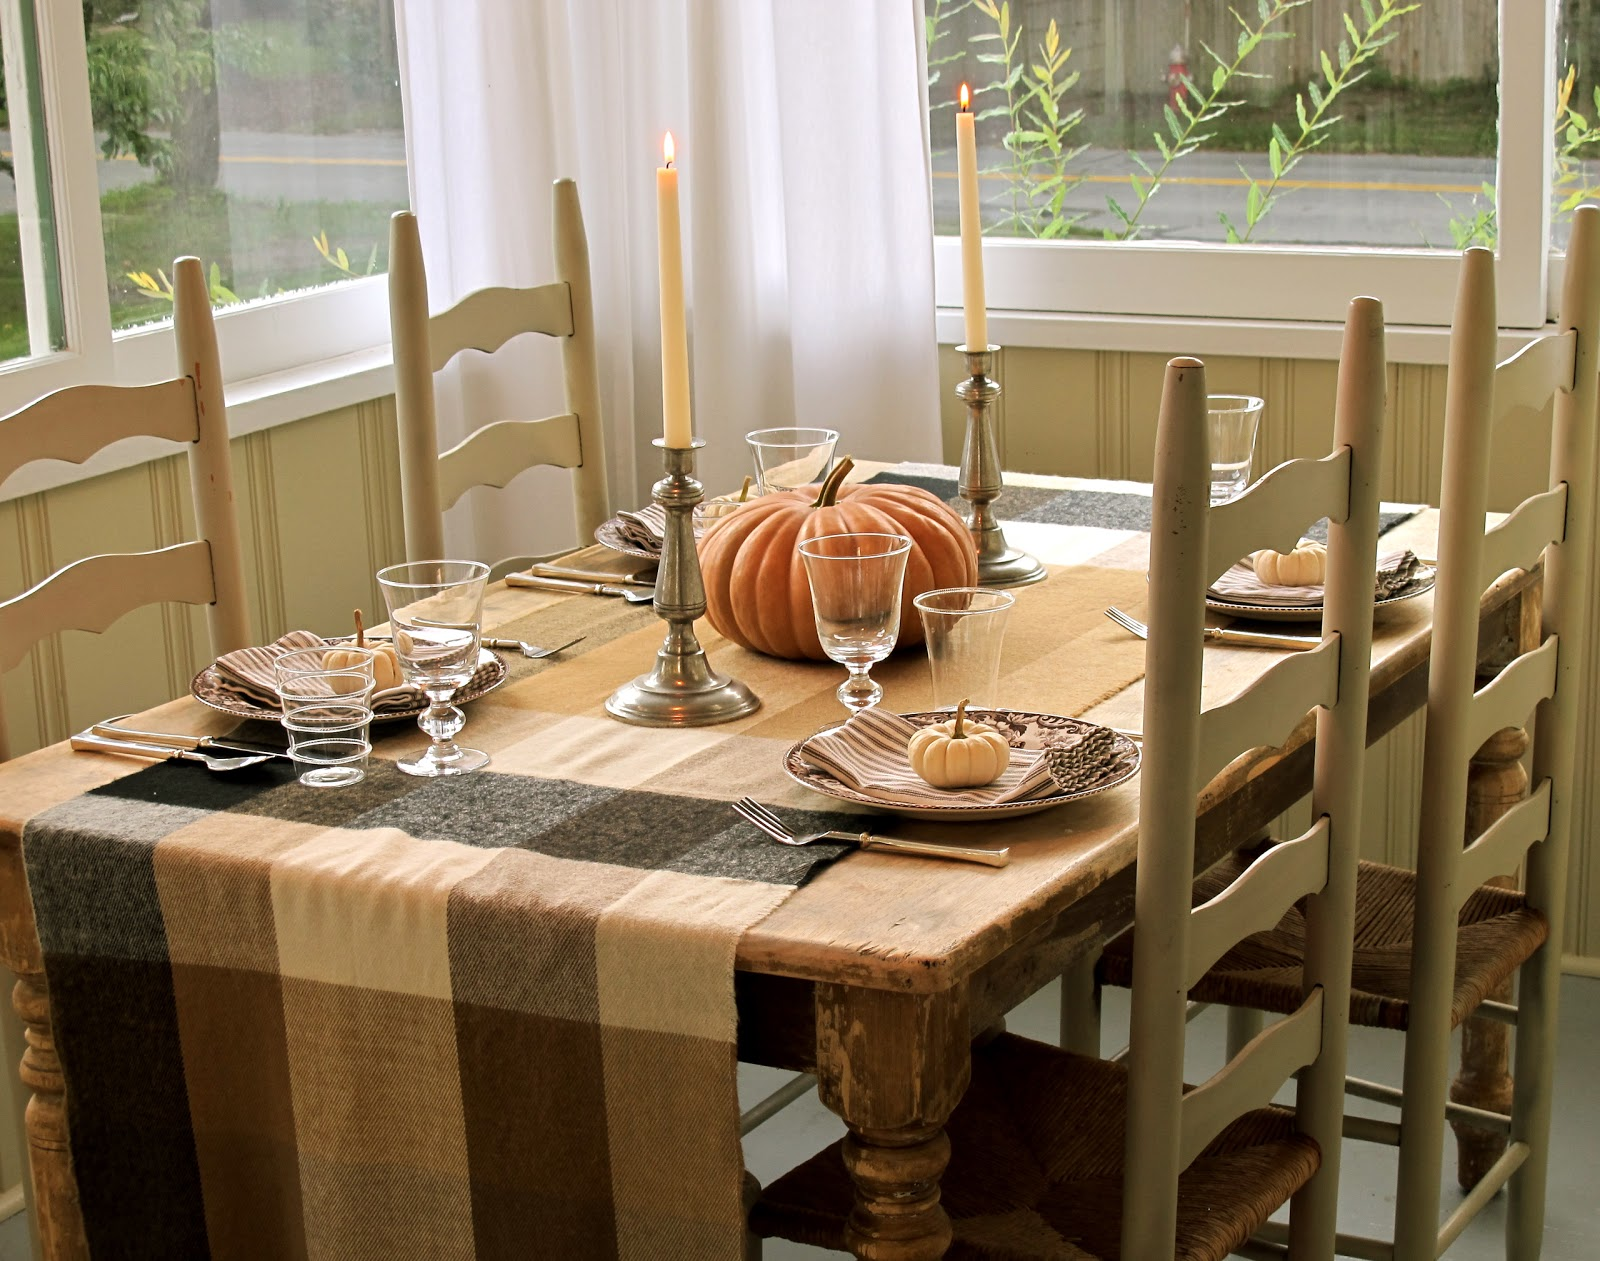 Jenny steffens hobick fall table setting fall Fall decorating ideas for dinner party